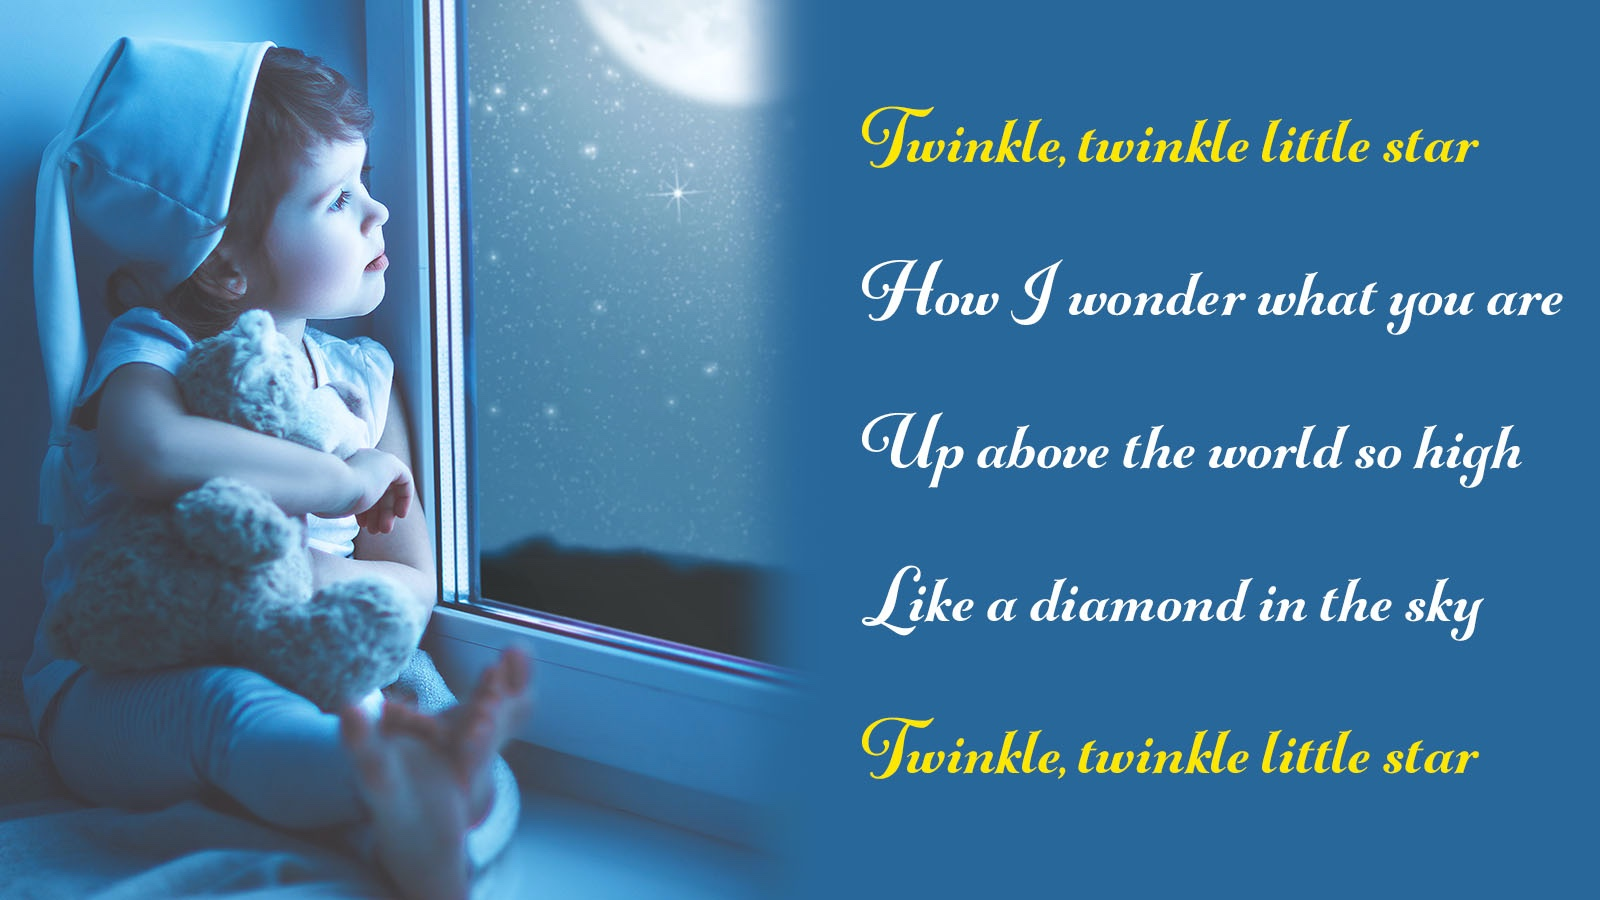 refrain example twinkle, twinkle little star